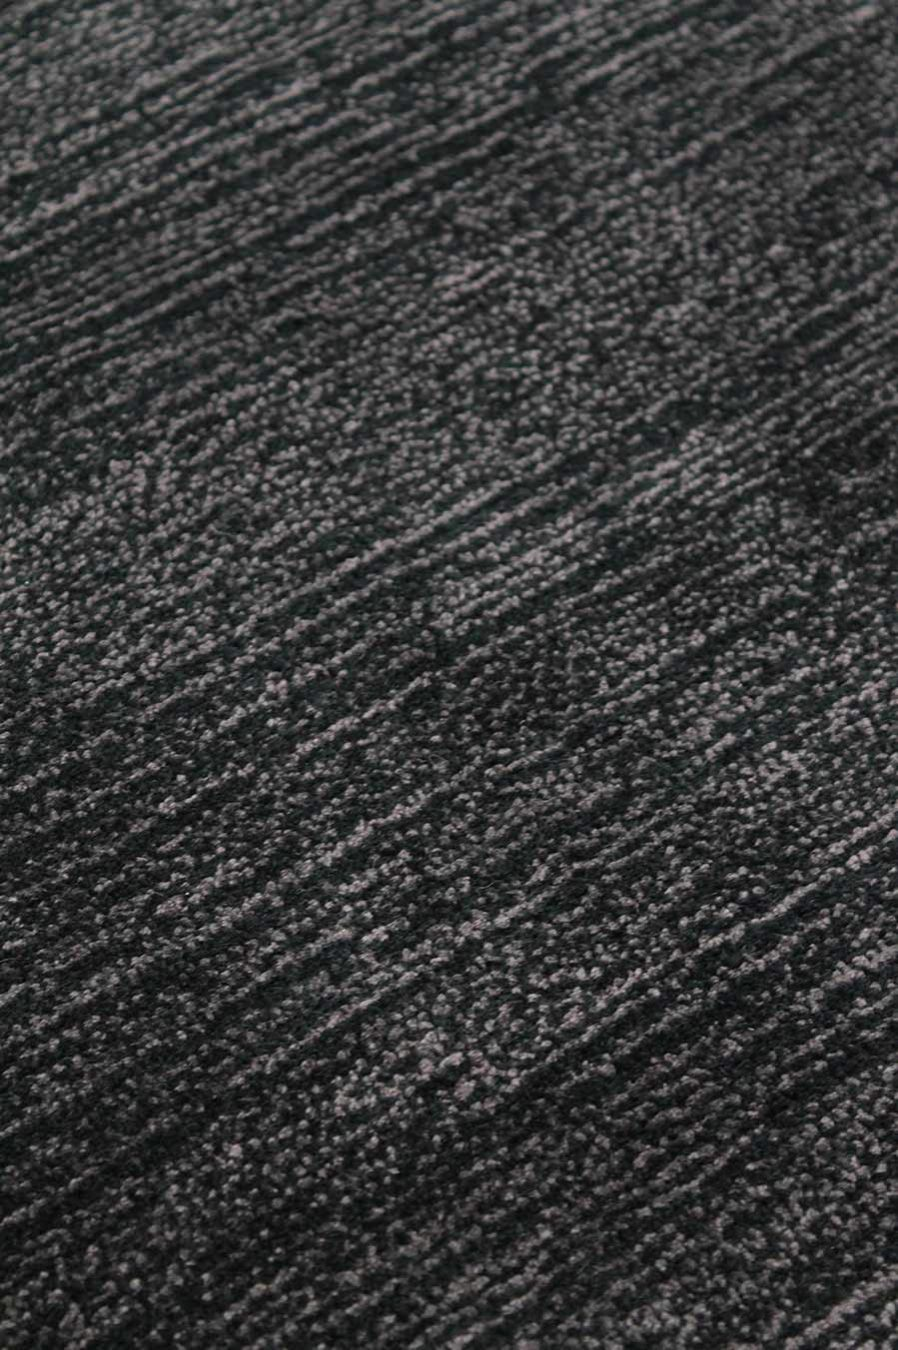 Close up view of circular Shroud rug in black colour